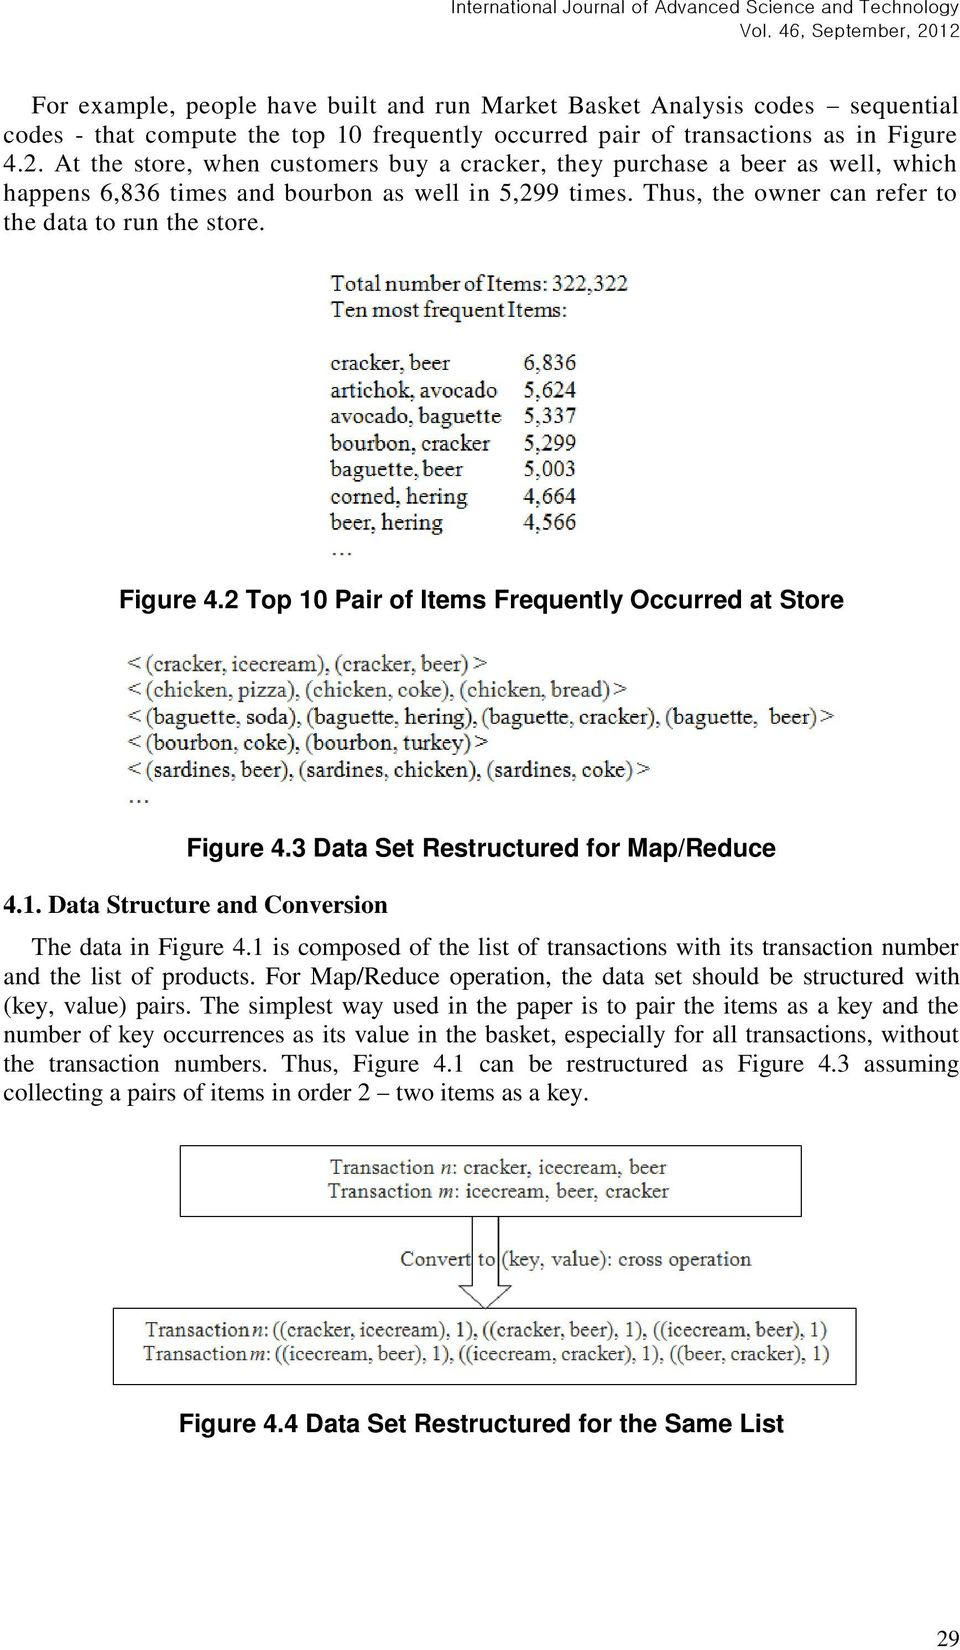 Figure 4.2 Top 10 Pair of Items Frequently Occurred at Store Figure 4.3 Data Set Restructured for Map/Reduce 4.1. Data Structure and Conversion The data in Figure 4.